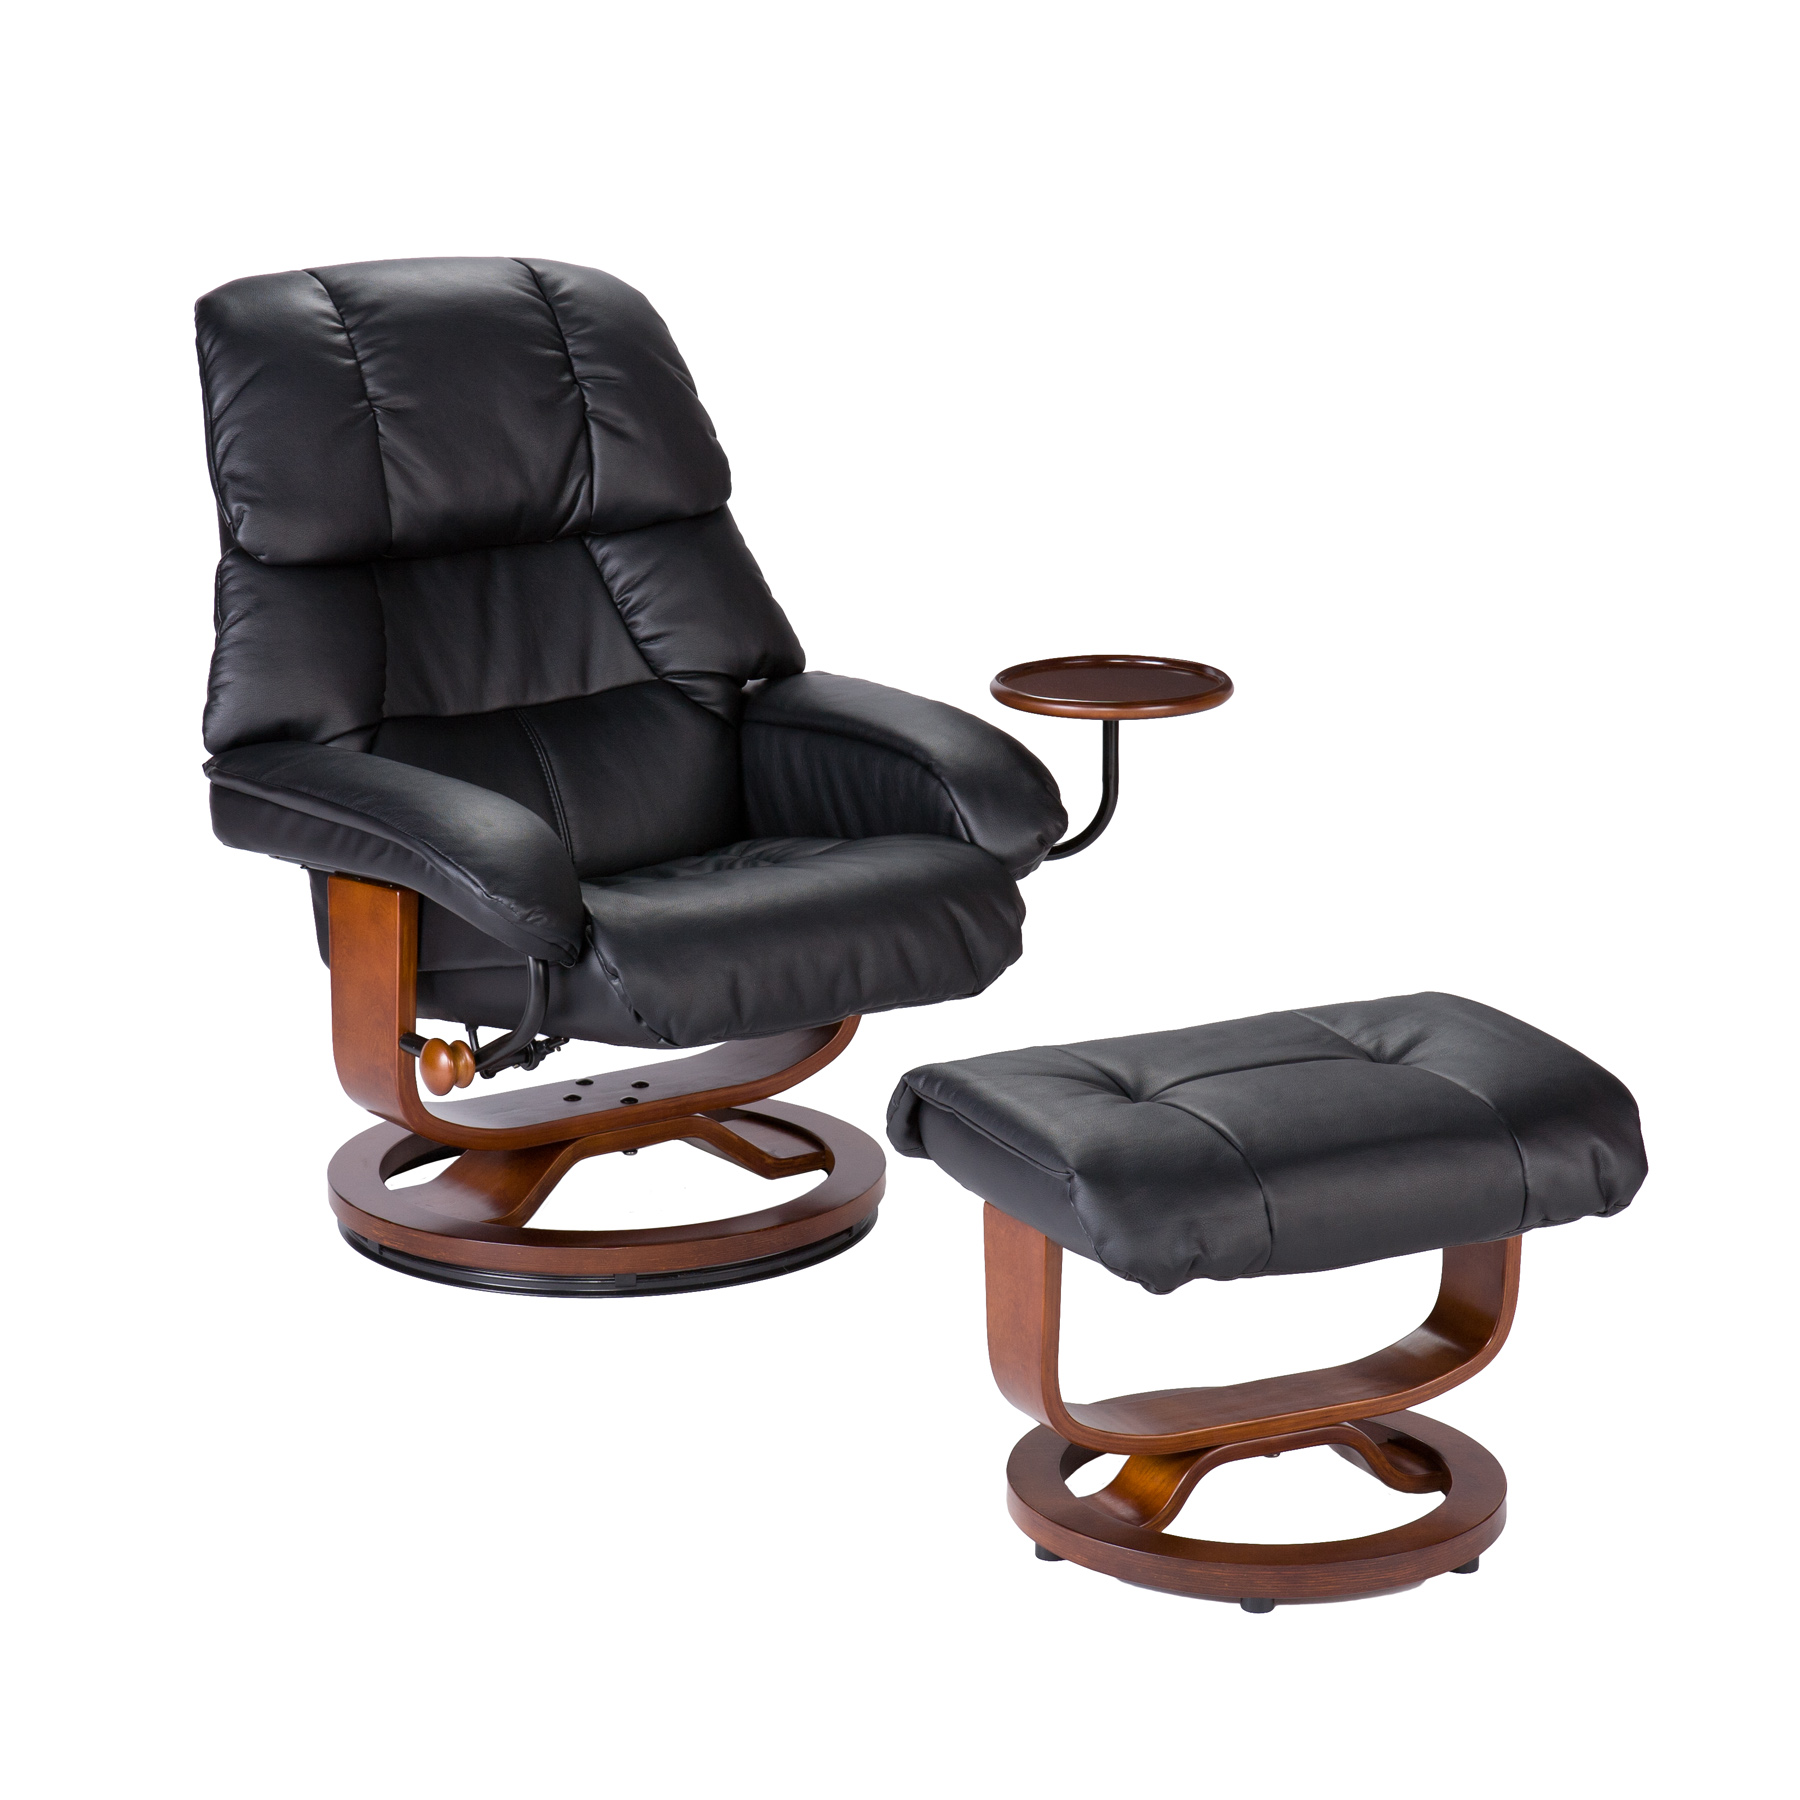 Small Chair With Ottoman: Southern Enterprises Modern Leather Recliner And Ottoman